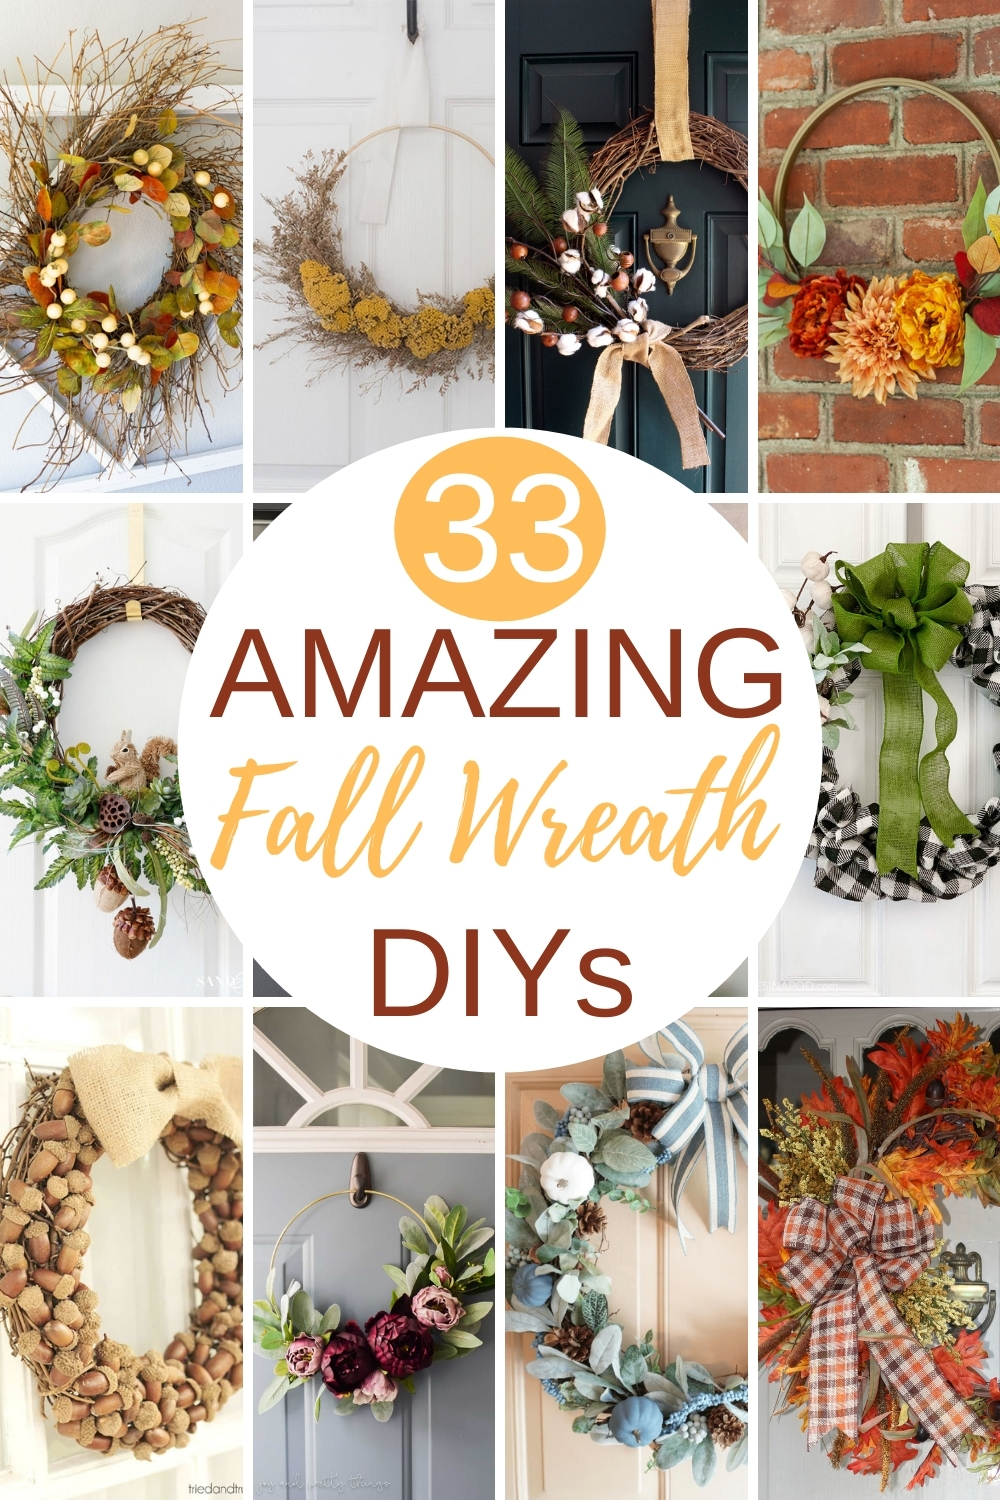 33 Amazing Fall Wreath DIYs - Get inspired to make a fall wreath using this collection of 33 DIY fall wreaths.  Learn how to make a fall wreath inspired by these shared by a group of talented home decor bloggers.  #fallwreathideas #diyfallwreath #diyfallwreathideas #howtomakeafallwreath via @spaula